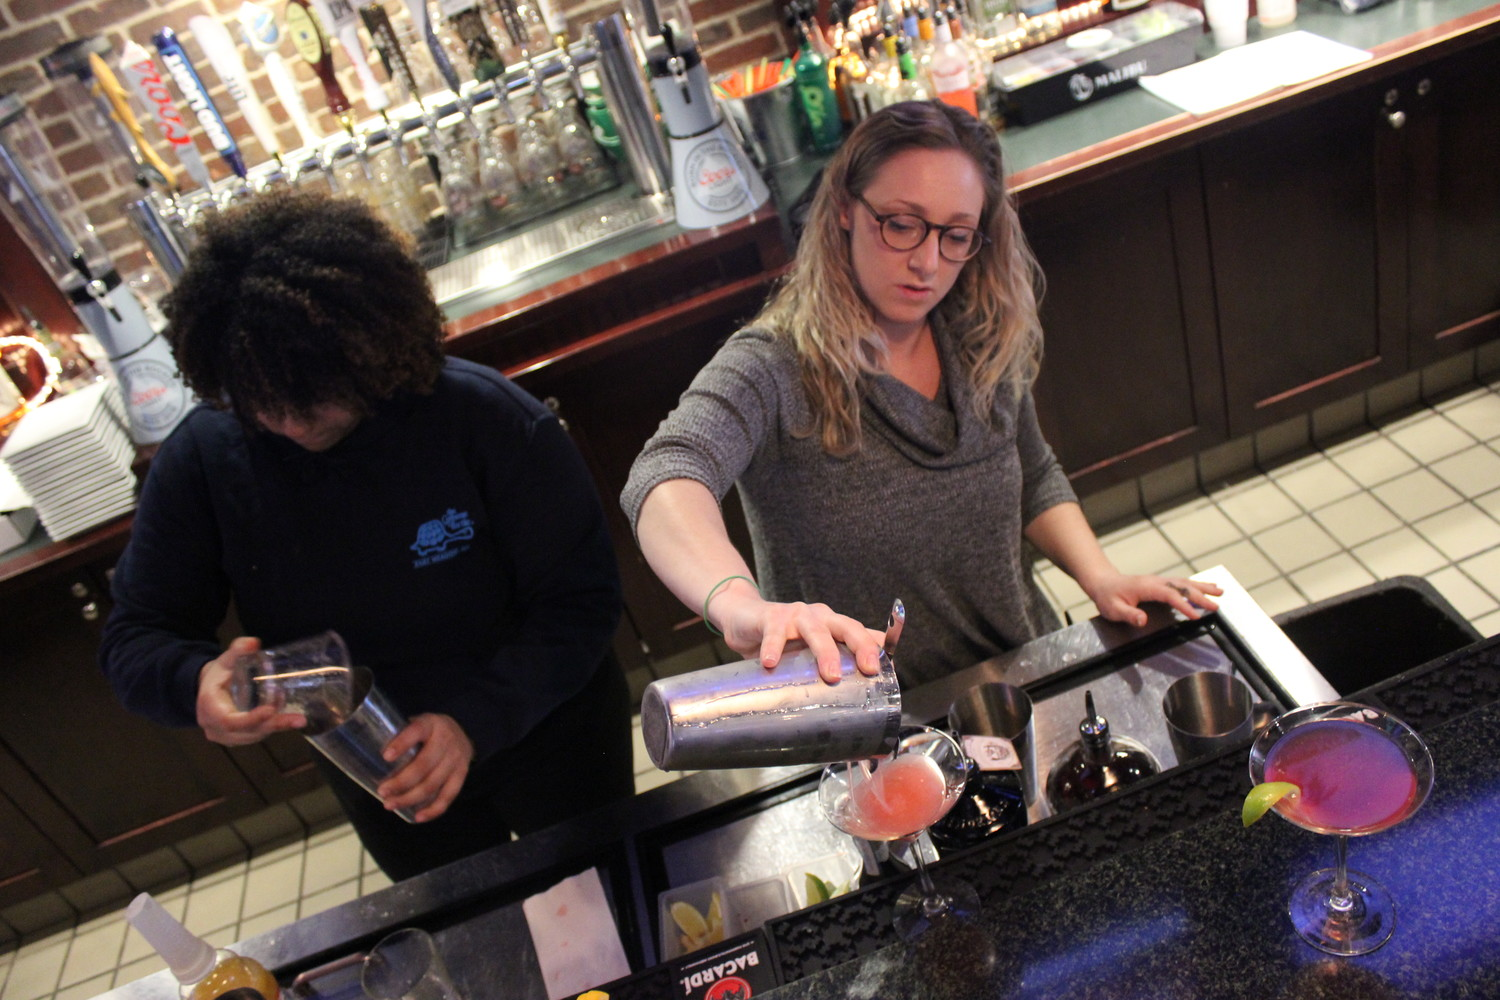 Stephanie De Los Santos, 22, left, and Michelle Baumann, 26, both of East Meadow, triumphed in the regional round of the Greene Turtle's fourth annual Bring Your Own Bartender competition and will be competing on April 13 for a chance to have one of their drinks added to the menu.